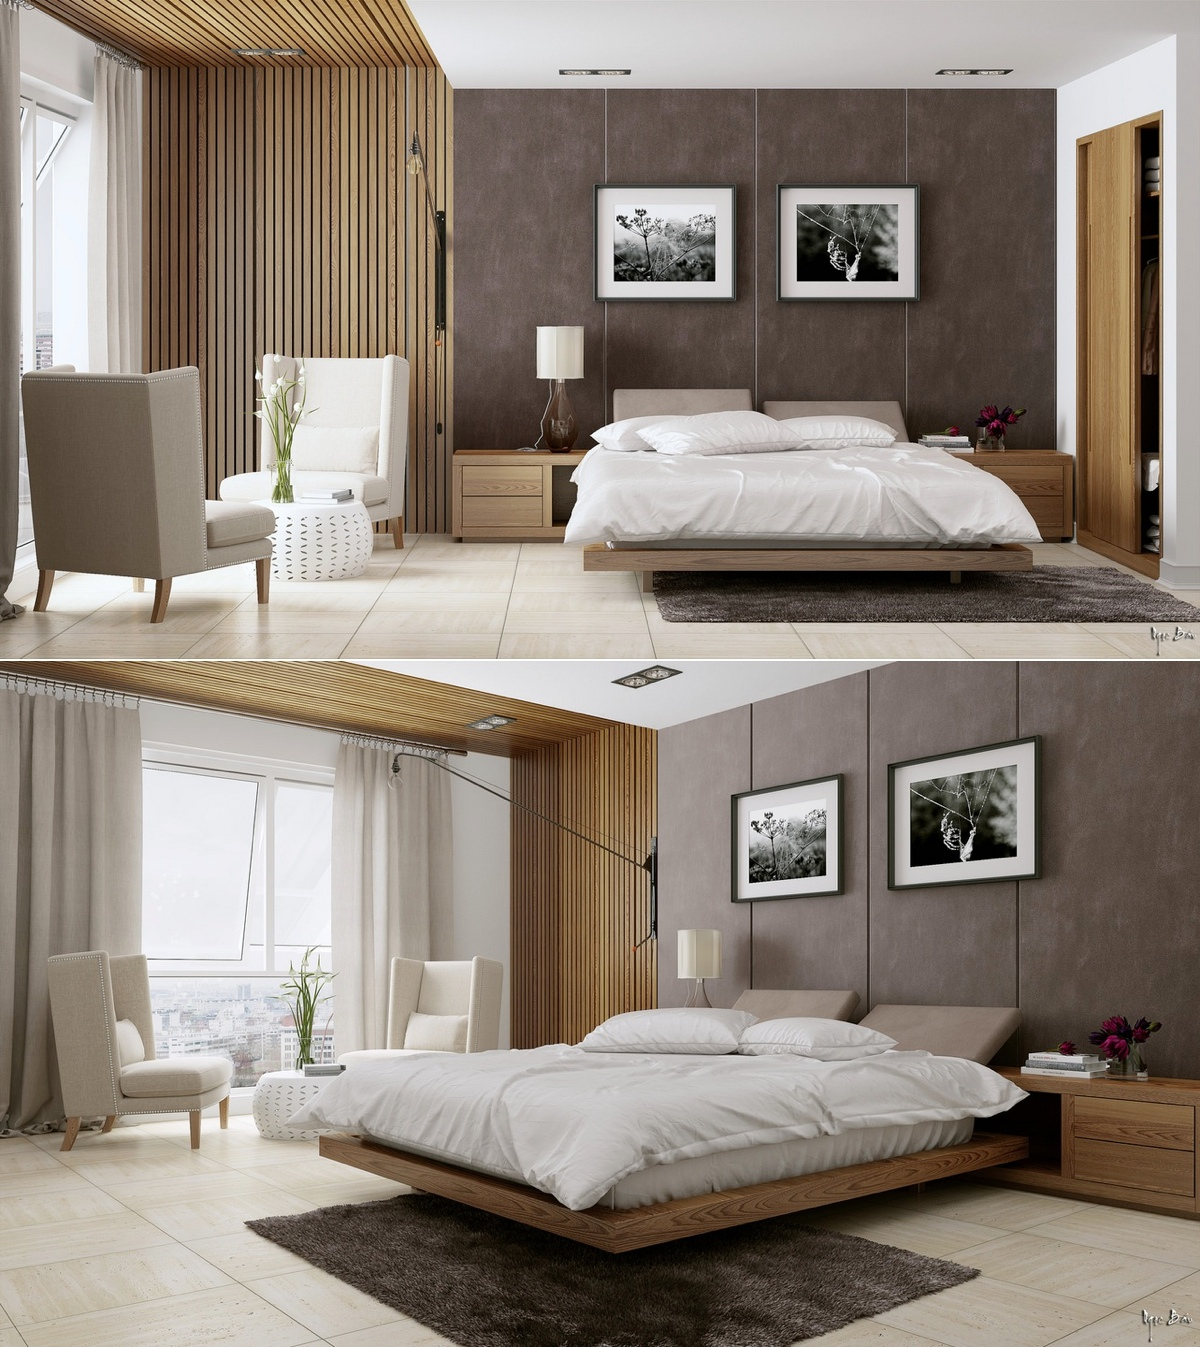 Romantic modern bedroom interior design ideas for Bedroom interior design images